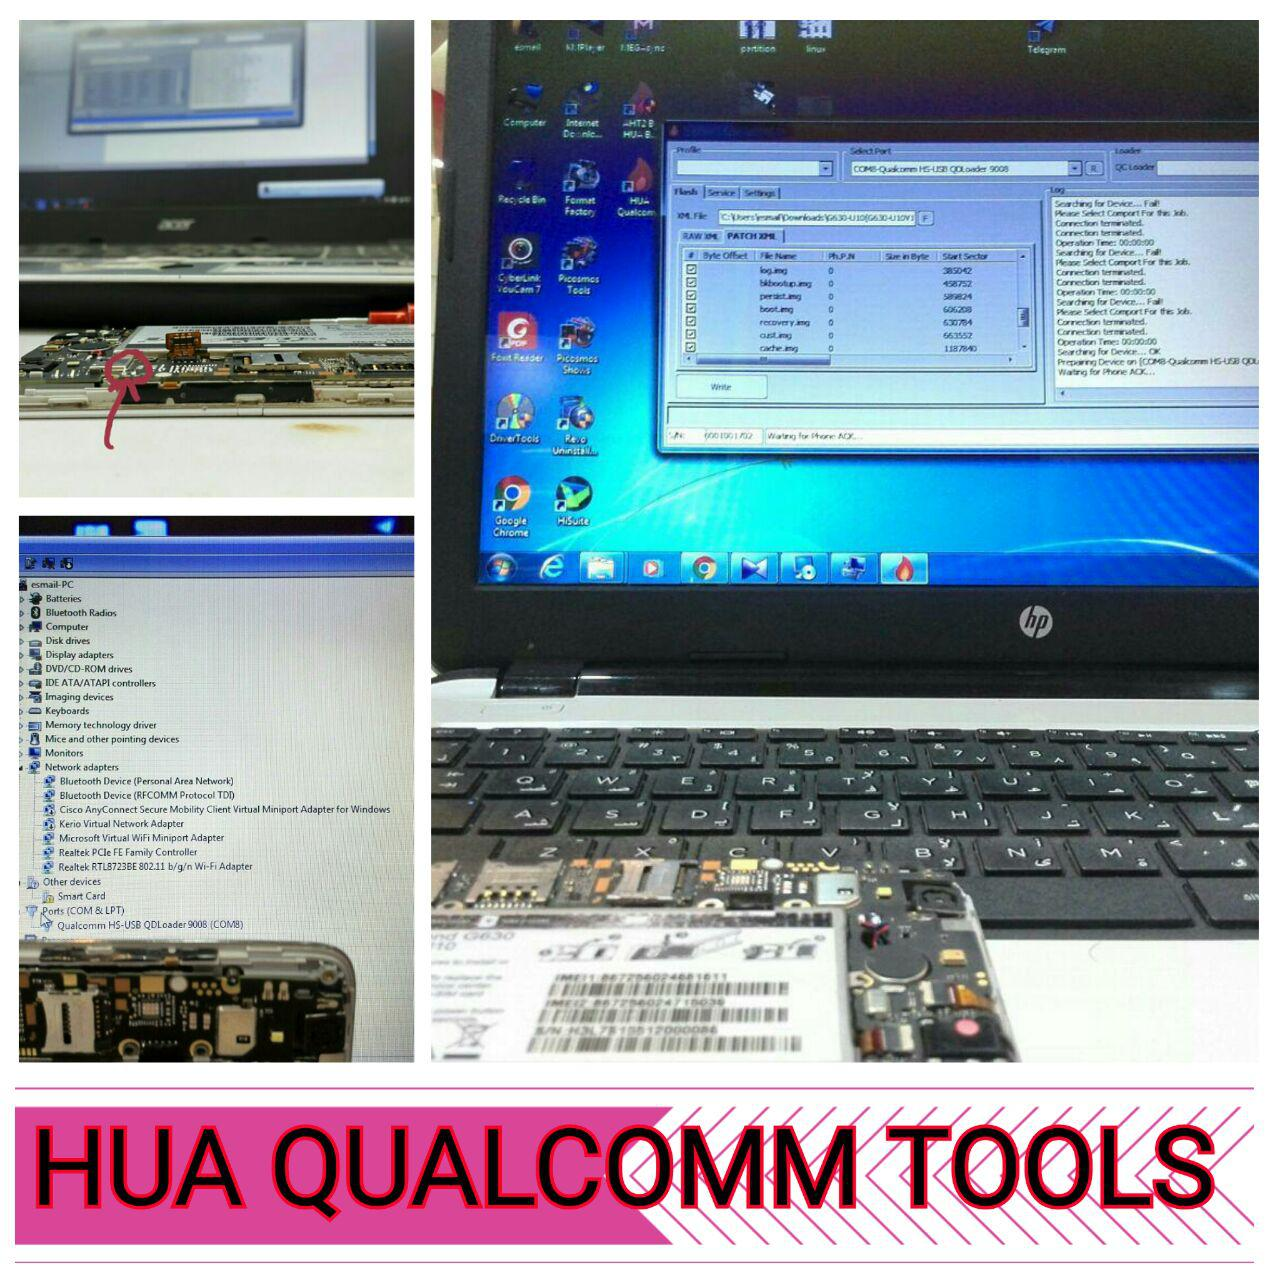 Hua box(Qulacomm tools version 1 0 2)released Free For all Huabox